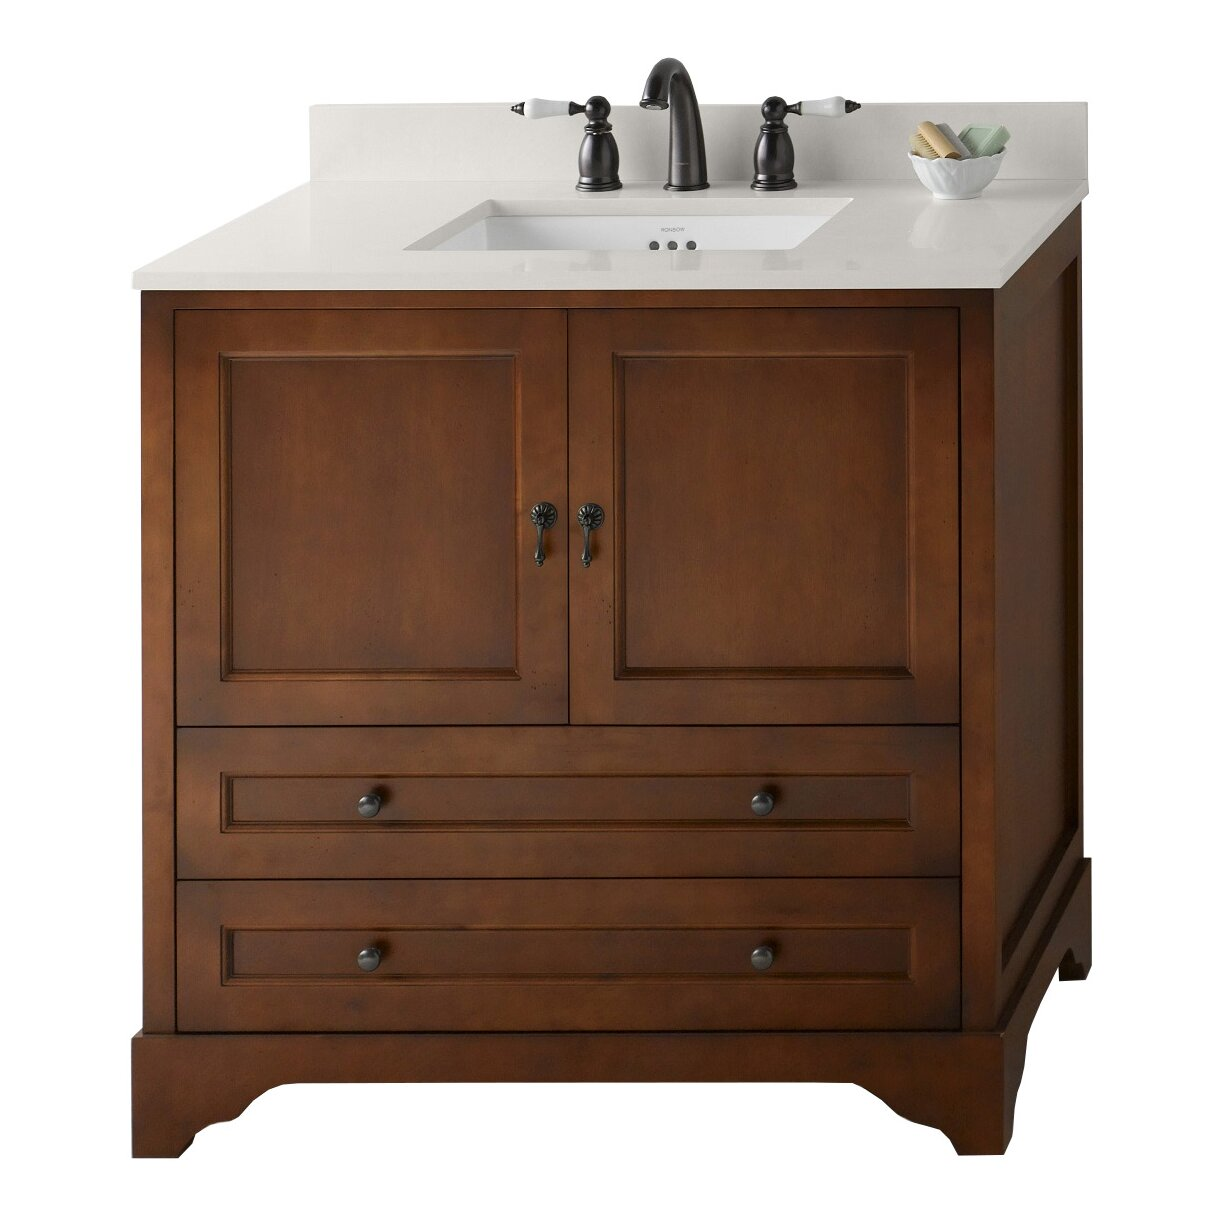 Ronbow milano 36 single bathroom vanity set wayfair for Bath and vanity set